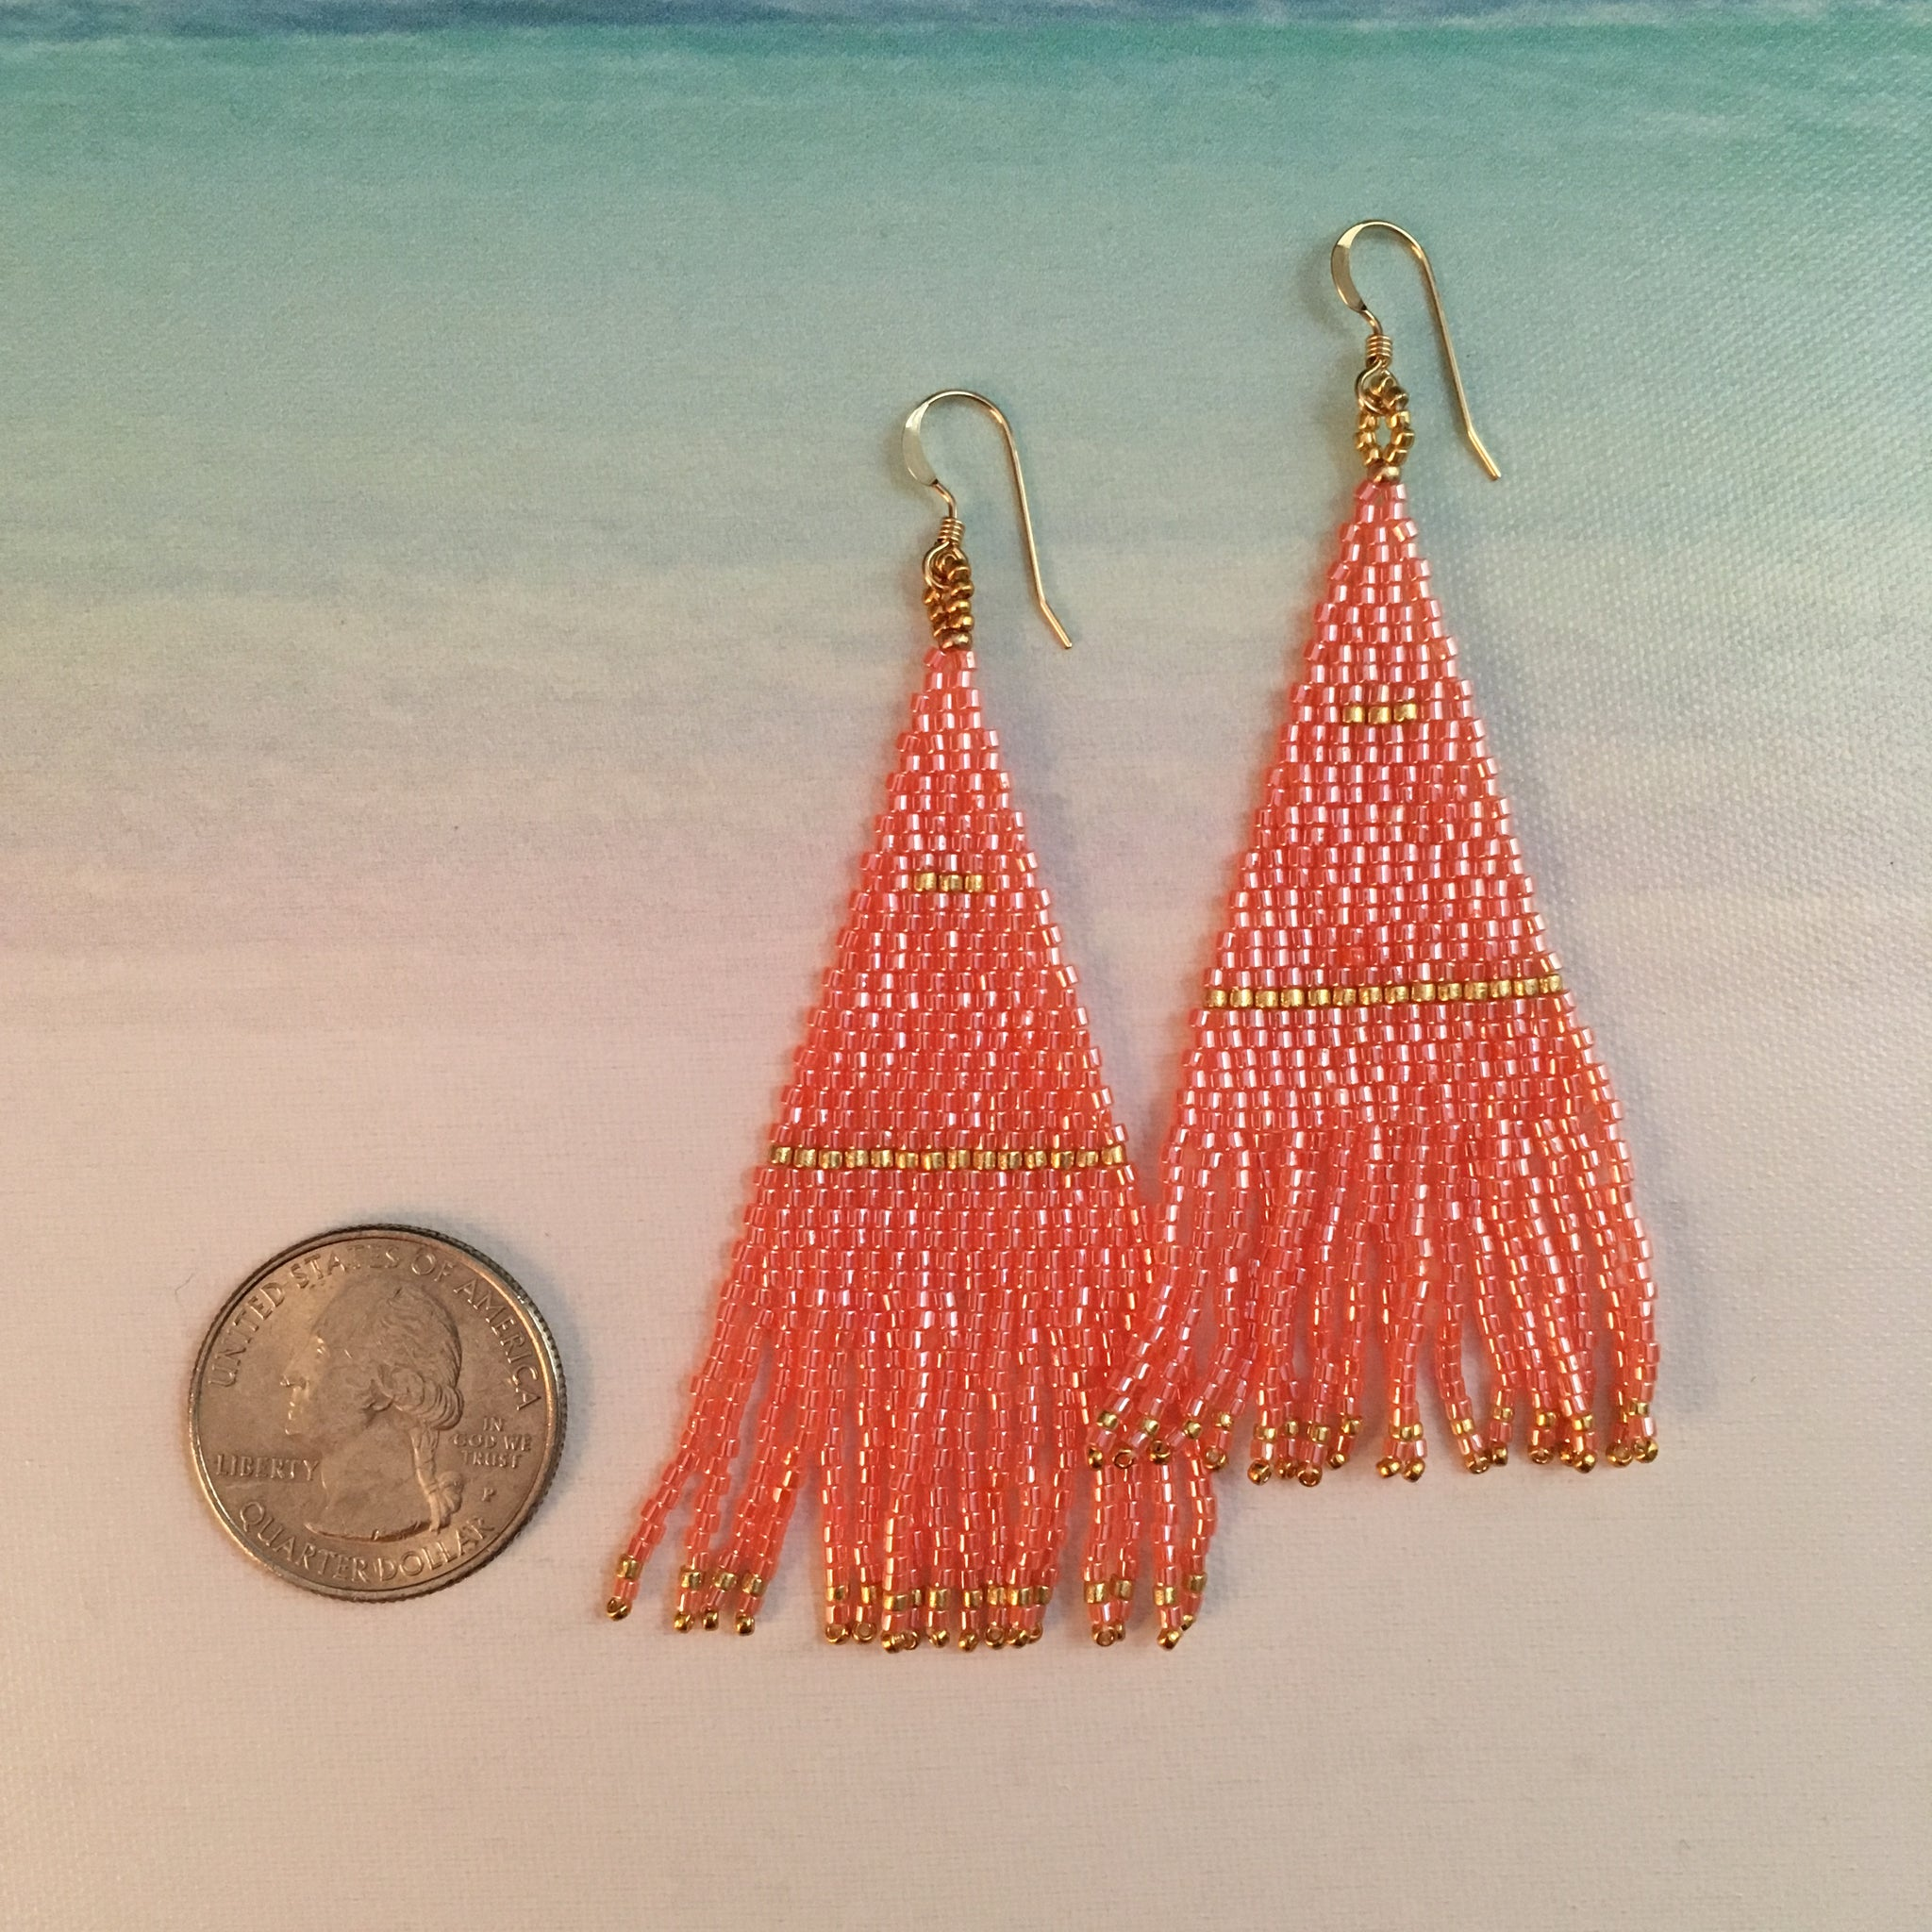 Beaded Tassel Fringe Earrings in Coral Peach and Gold